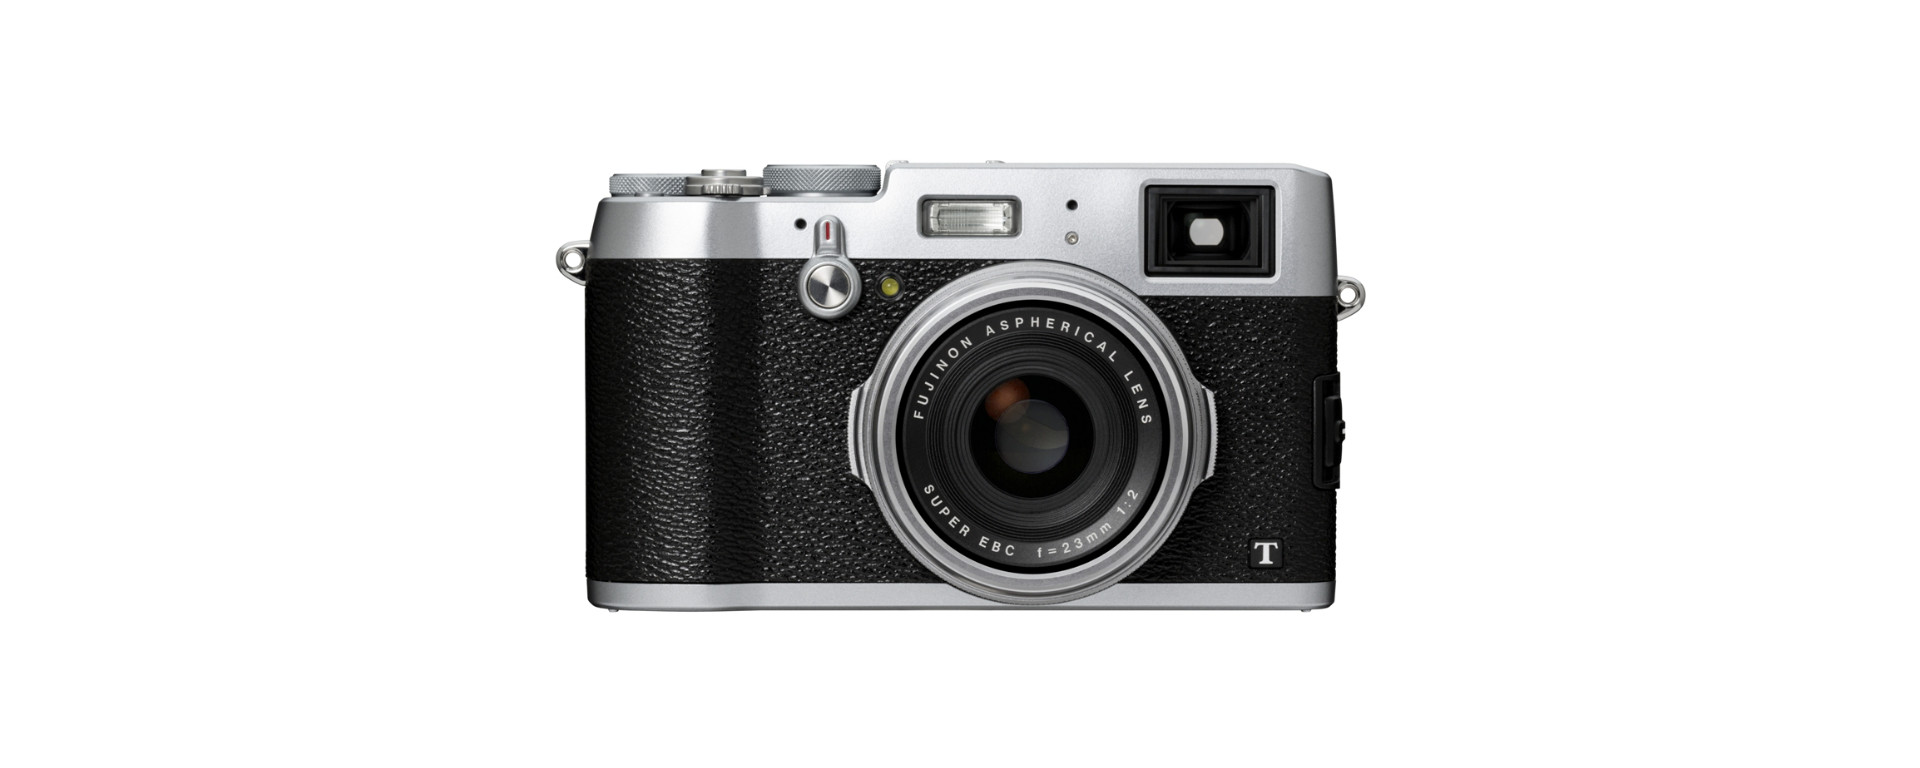 Fujifilm x100t camera review comparison to the fuji x100s